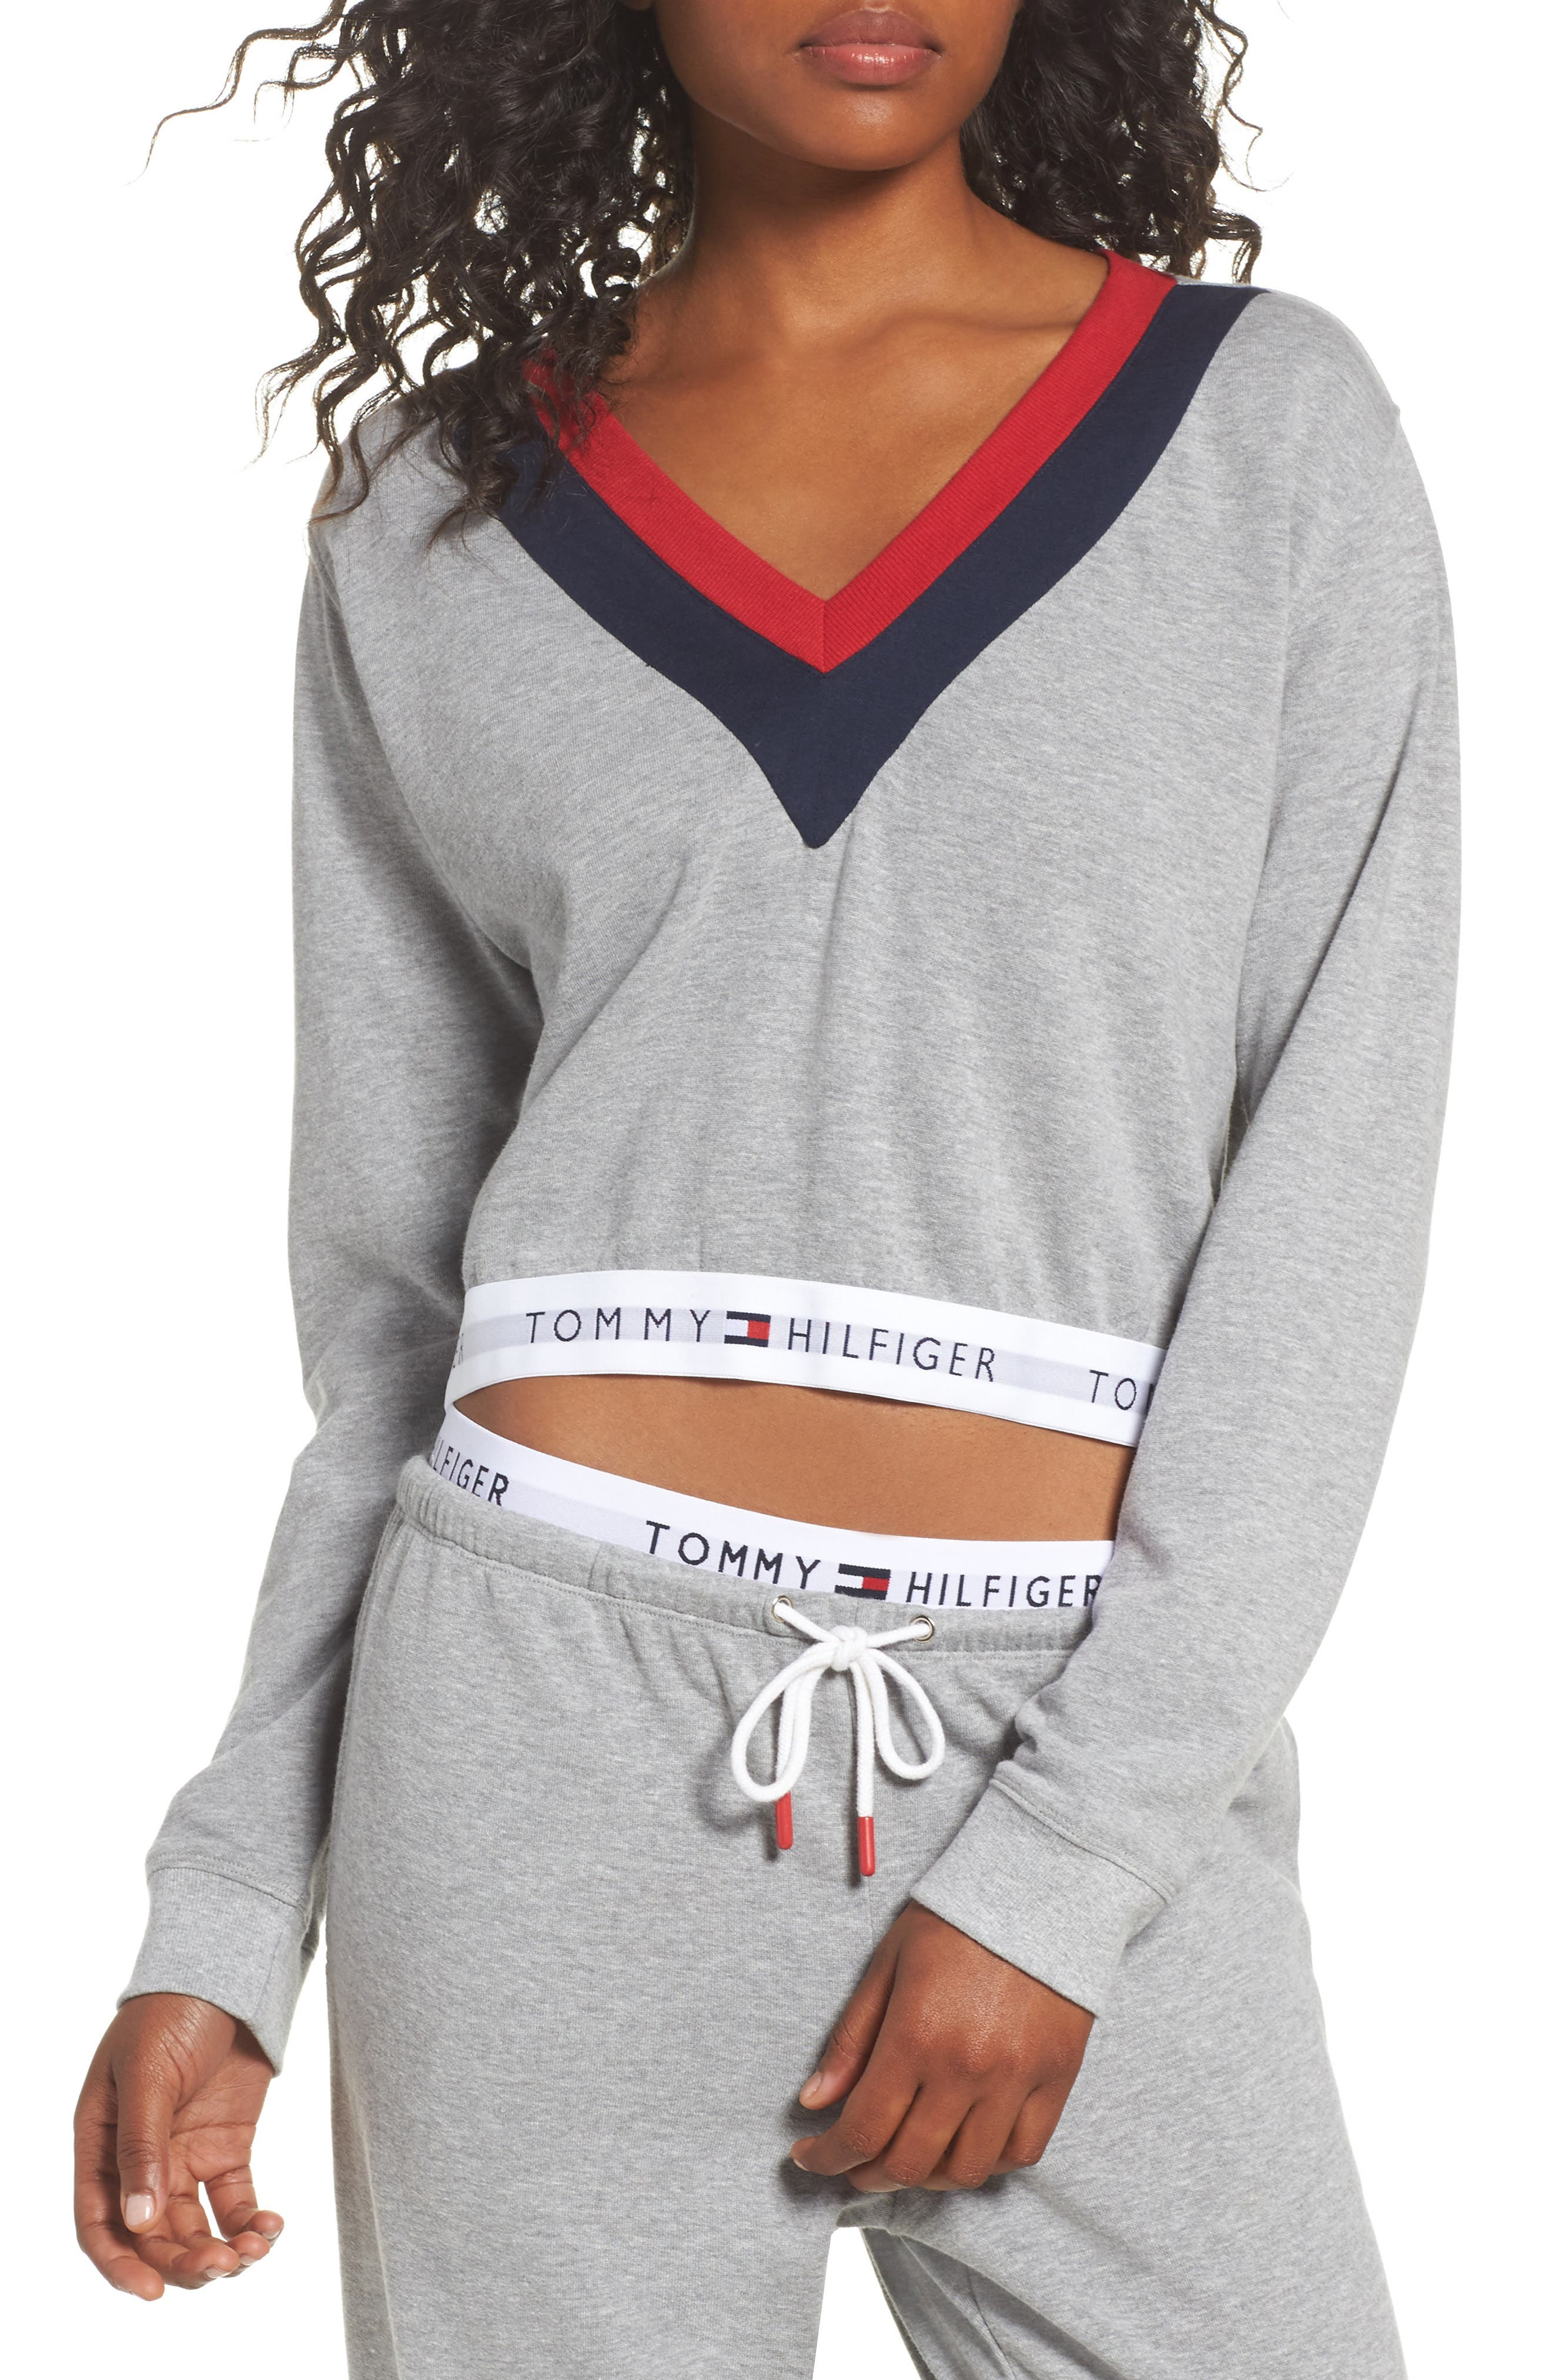 Tommy Hilfiger TH Retro Crop Top